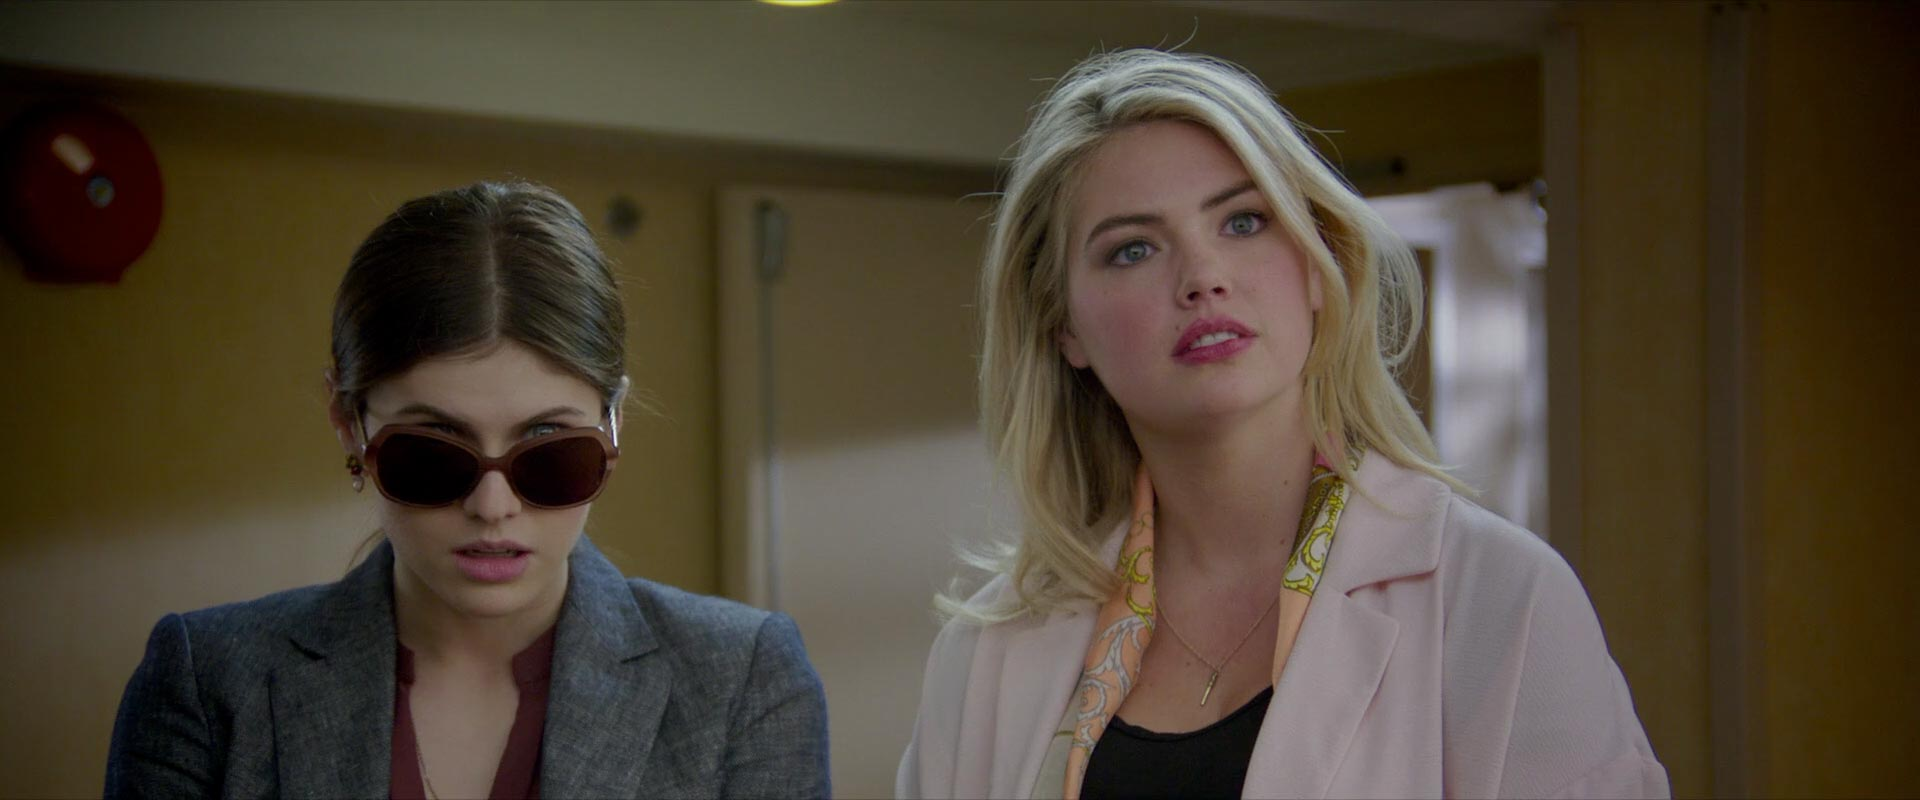 The Layover - Alexandra Daddario & Kate Upton